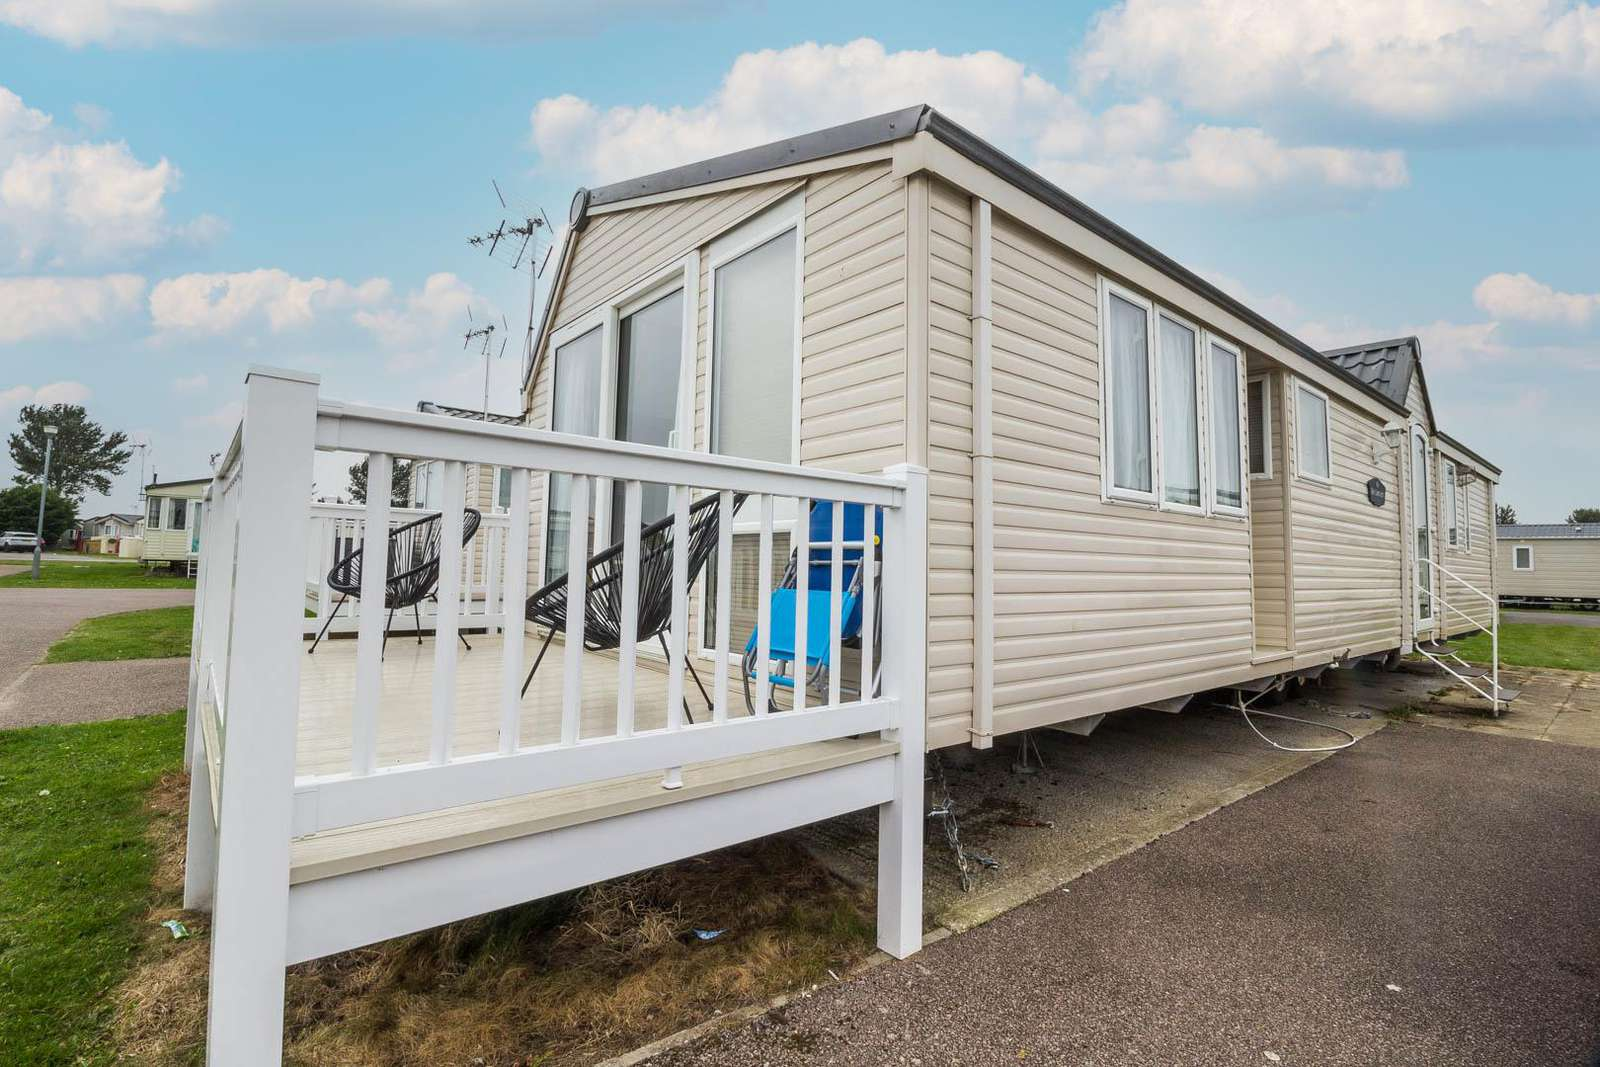 27457S – Seawick, 2 bed, 6 berth caravan with decking, D/G & C/H. Diamond rated. - property